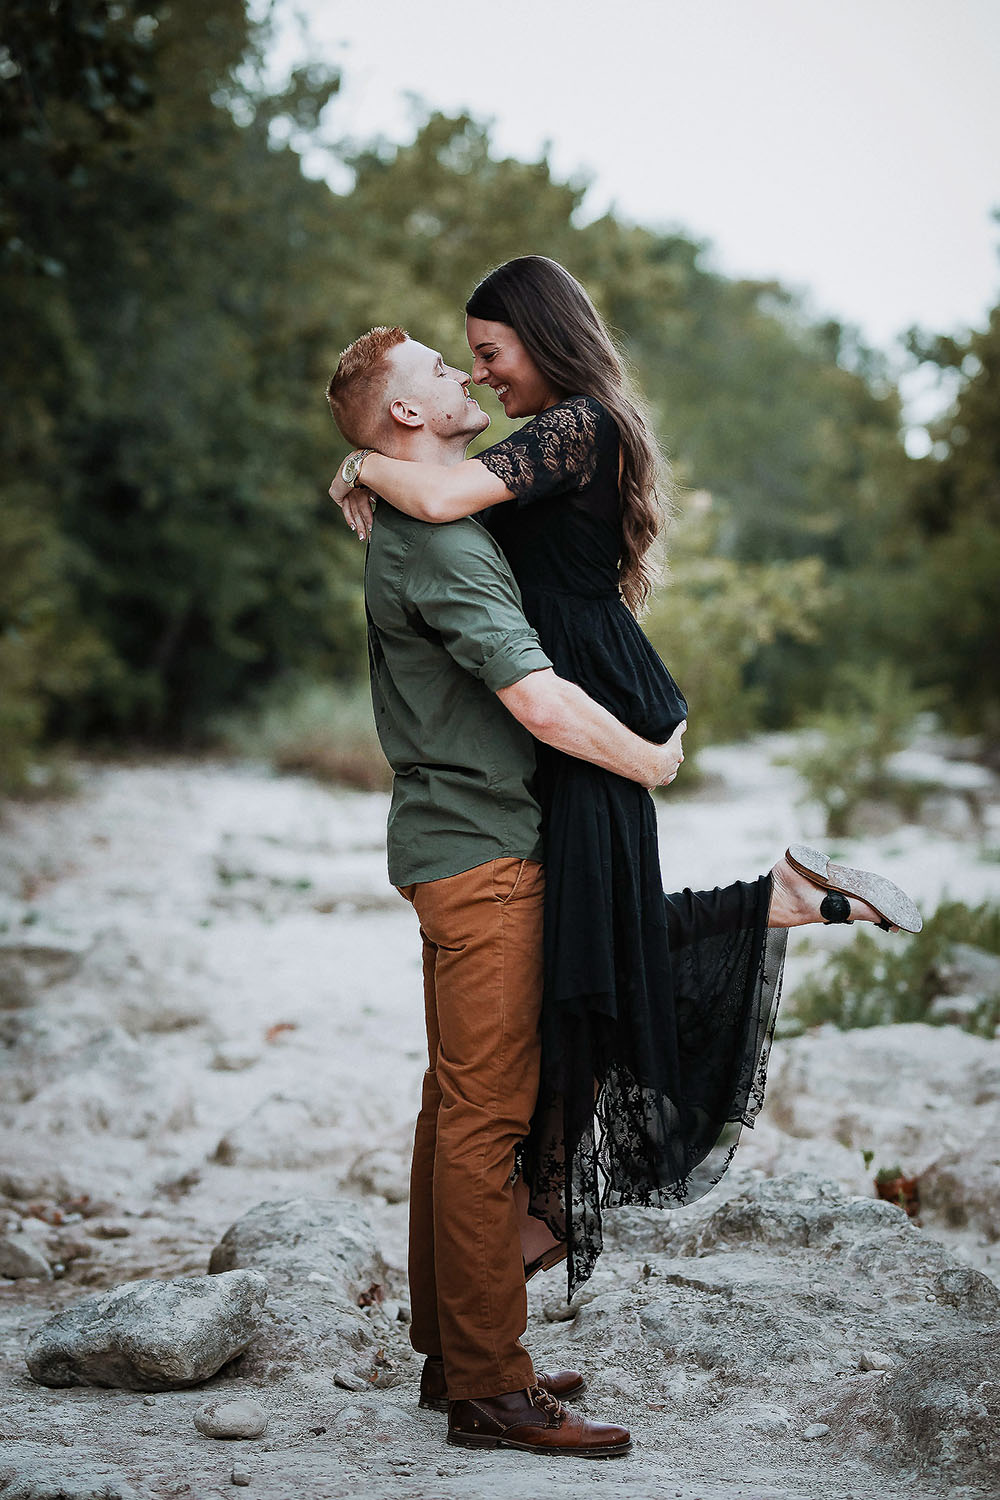 Engagement Session Giveaway 2019 - Three lucky South Texas couples are going to win big, this summer- one of them might as well be you! Enter to win 1 of 3 prizes:-First couple drawn will receive a FREE engagement session with 10 hi-res downloads-Second will receive 50% off an engagement session with 5 hi-res downloads-Third will receive $50 off the session fee PLUS a 16x20 print to display at their weddingAnd that's not all- everyone who enters, but doesn't win will still receive 10% off their session fee when they book with Lo Caruthers Photography!There's literally NO reason for not entering!CONTEST RULES